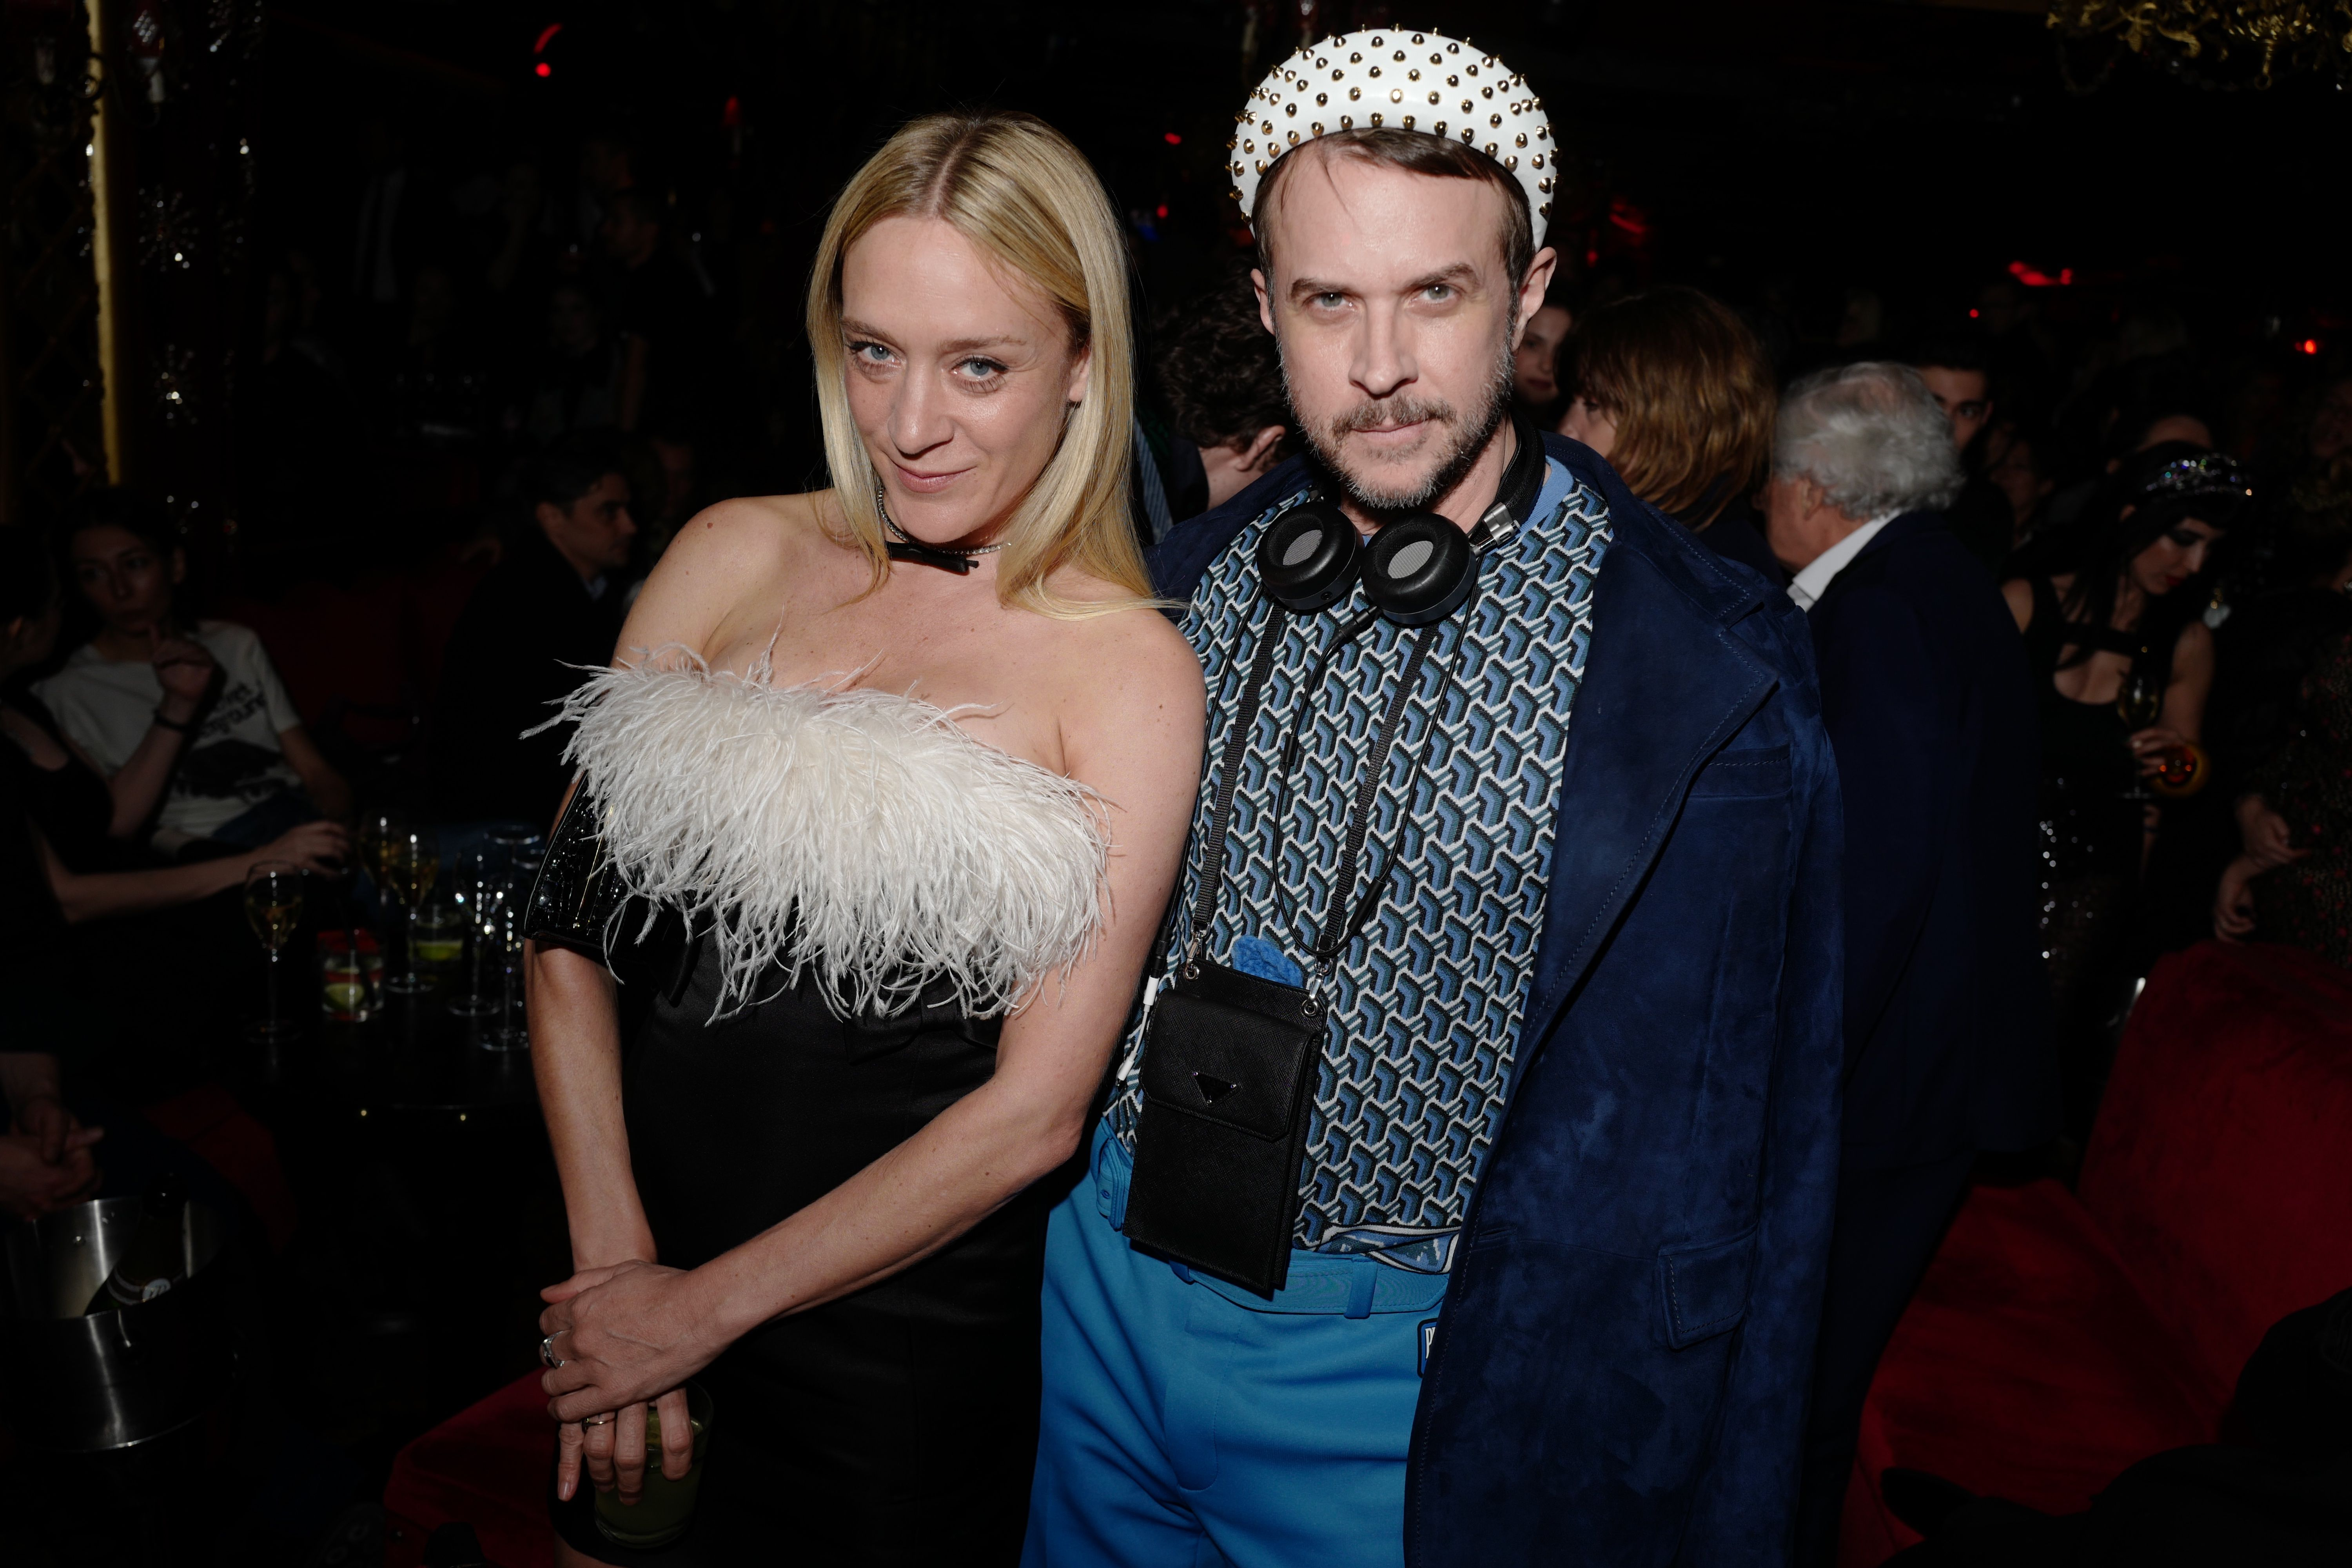 Chloë Sevigny and Casey Spooner Chloë Sevigny and Casey Spooner attend the Miu Miu Club, following the Fall Winter 2019 show, at 'Raspoutine' in Paris on March 5.